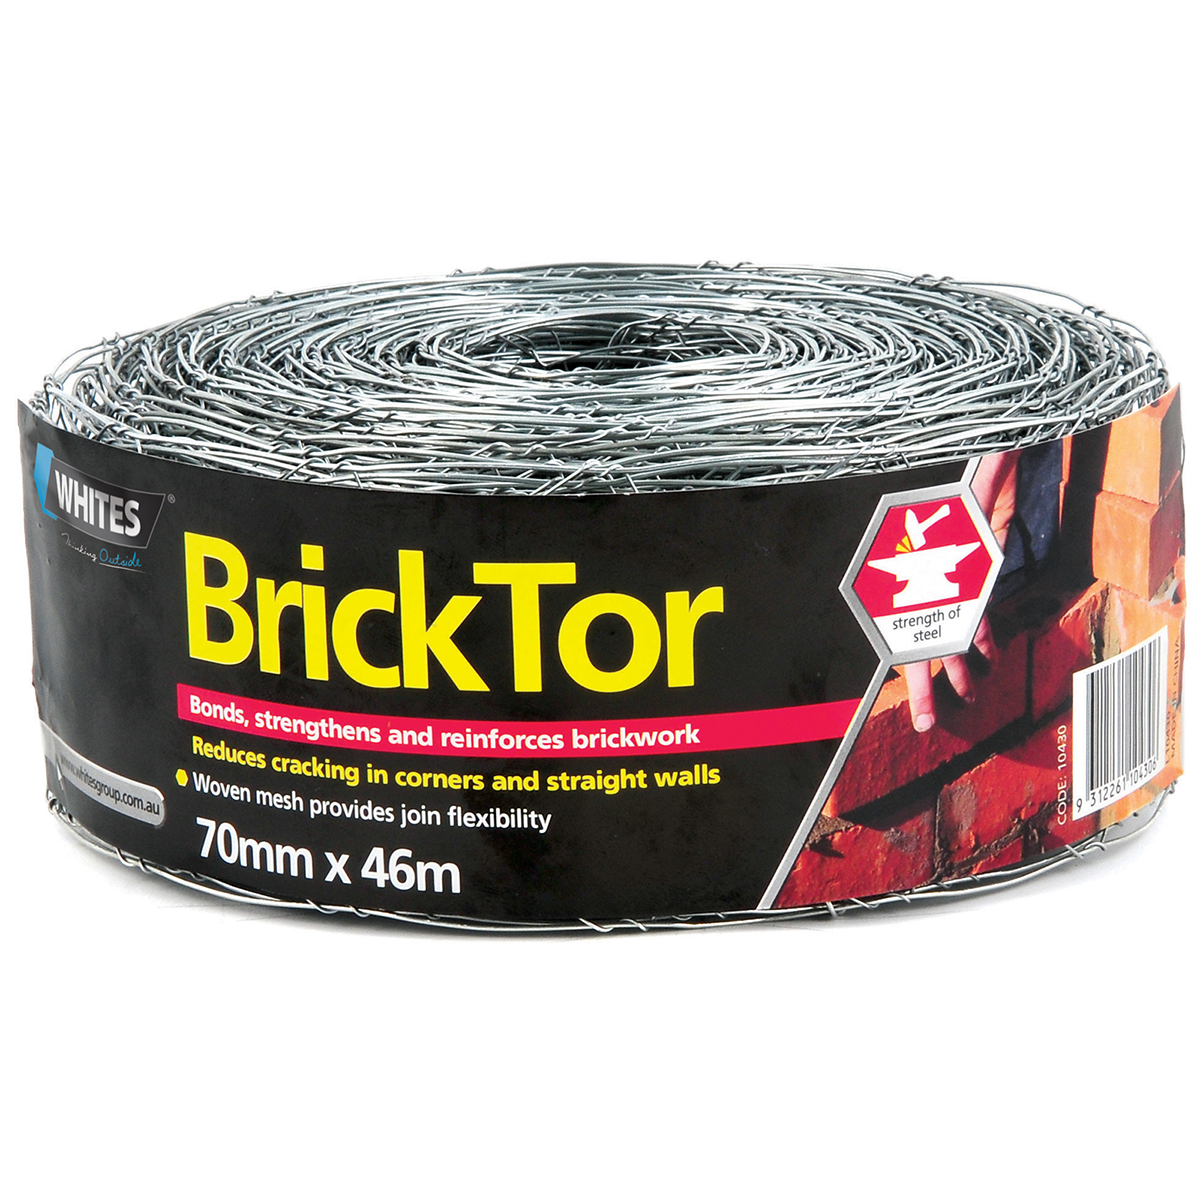 10430 BrickTor Galvanised 70mm x 46m Updated 1200px